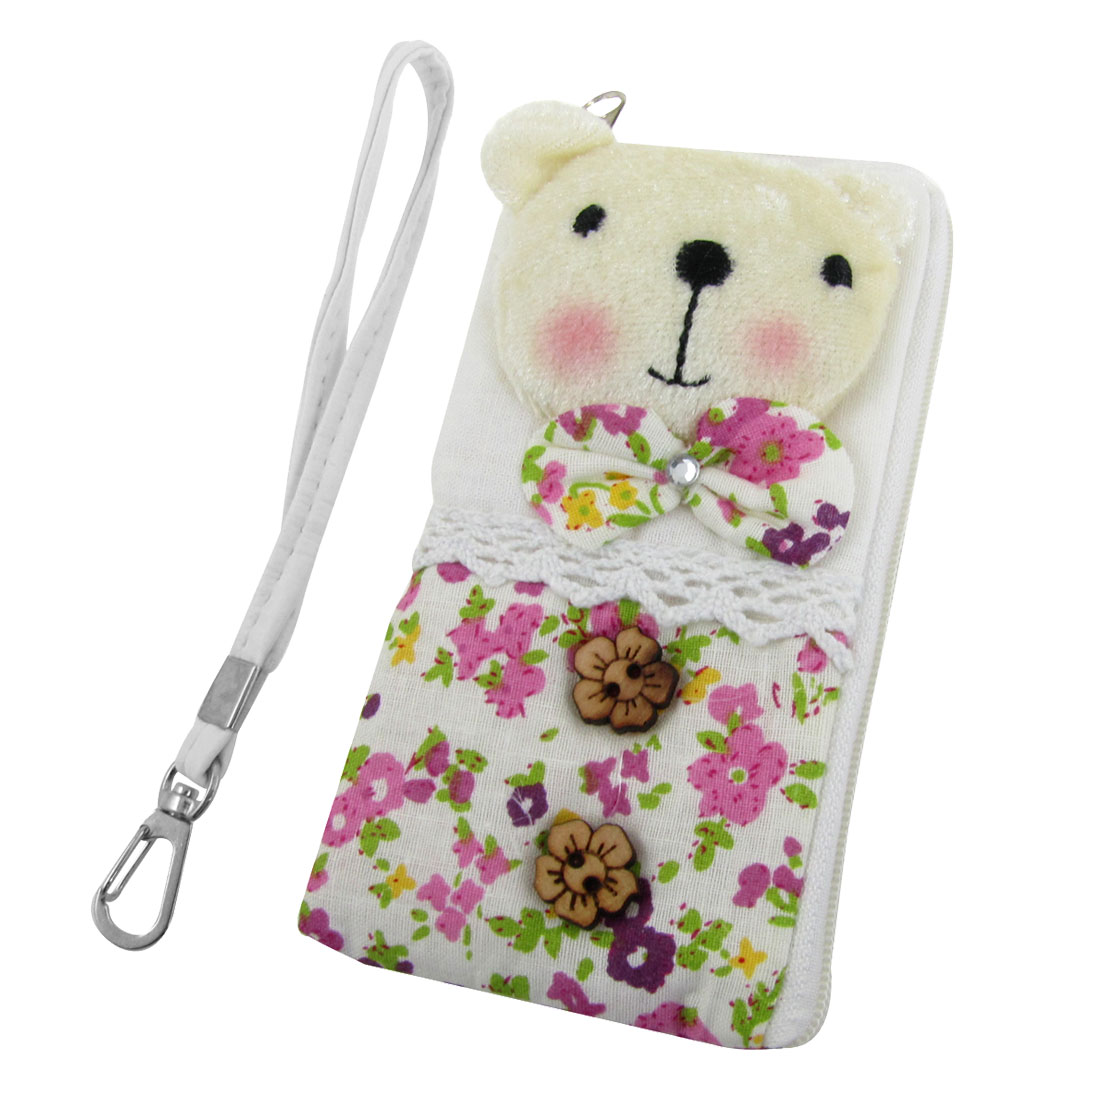 Brown Flower Decor L Shape Zip Up Pouch Bag Holder for iPhone 4 4G 4S